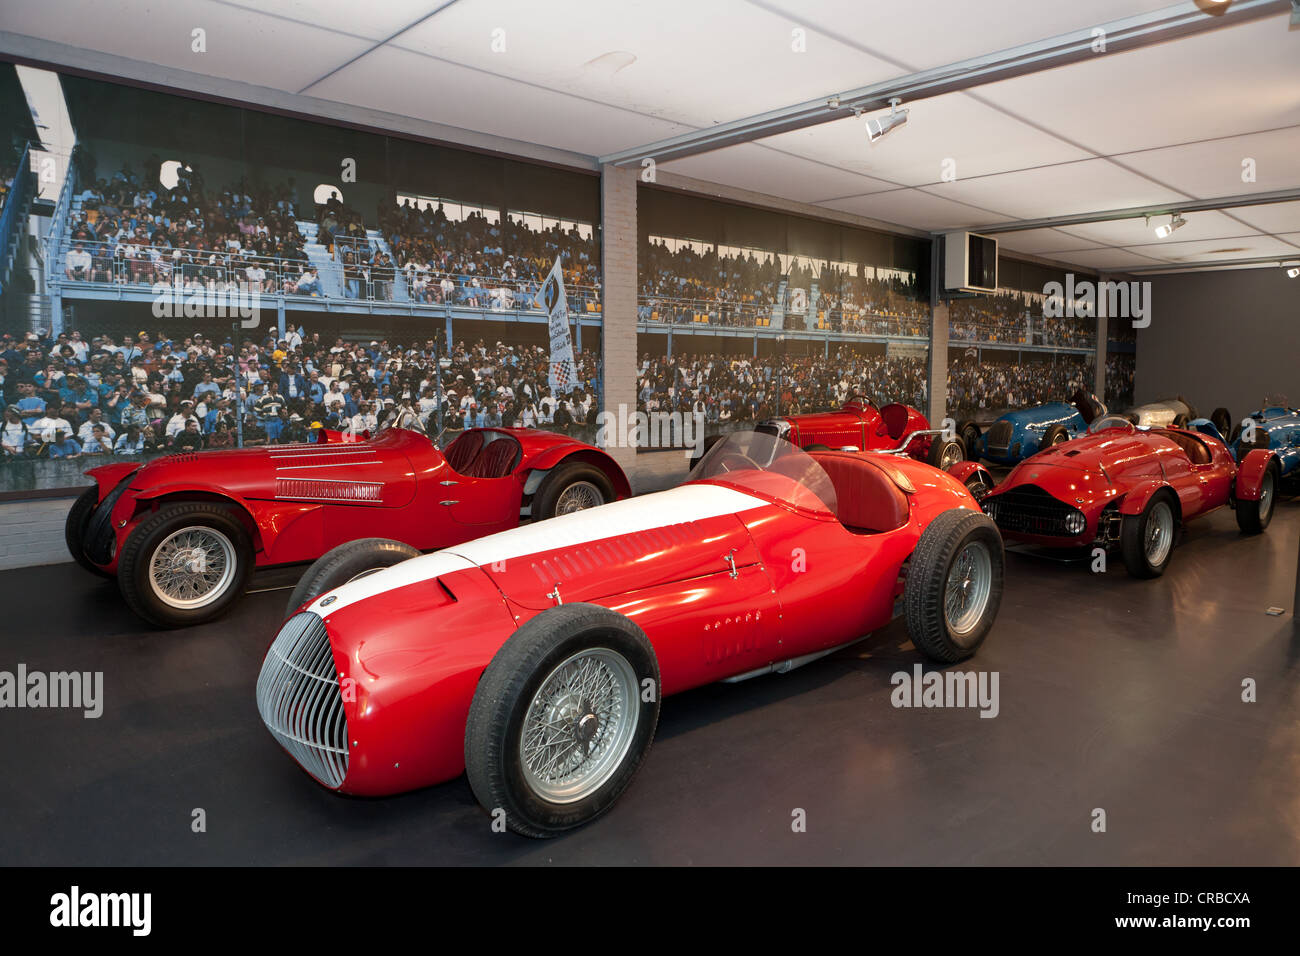 automobile museum in mulhouse alsace stock photos automobile museum in mulhouse alsace stock. Black Bedroom Furniture Sets. Home Design Ideas